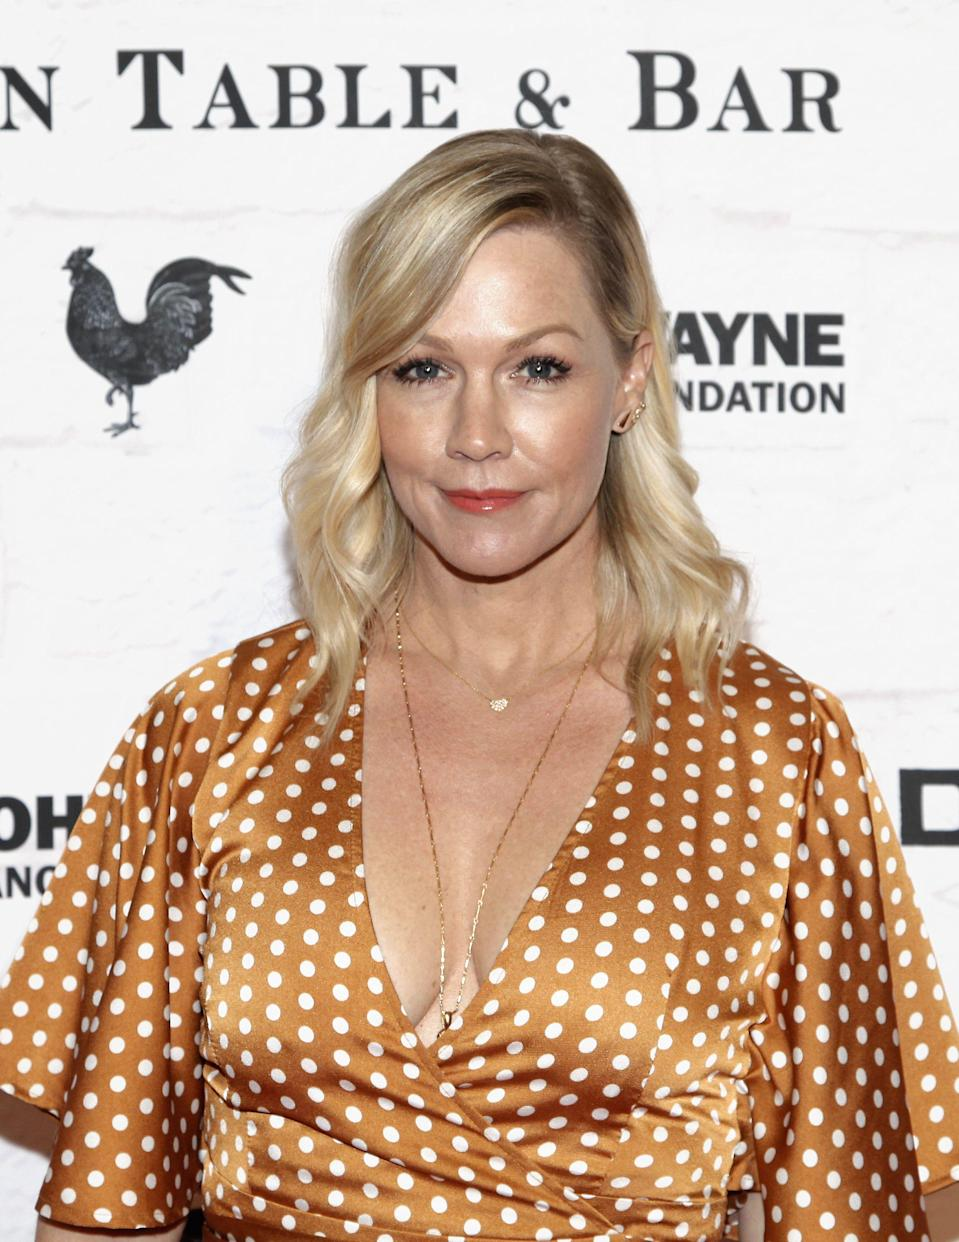 Jennie Garth attends Yardbird's Southern Table & Bar Los Angeles grand opening on April 5, 2018 in Los Angeles, California.